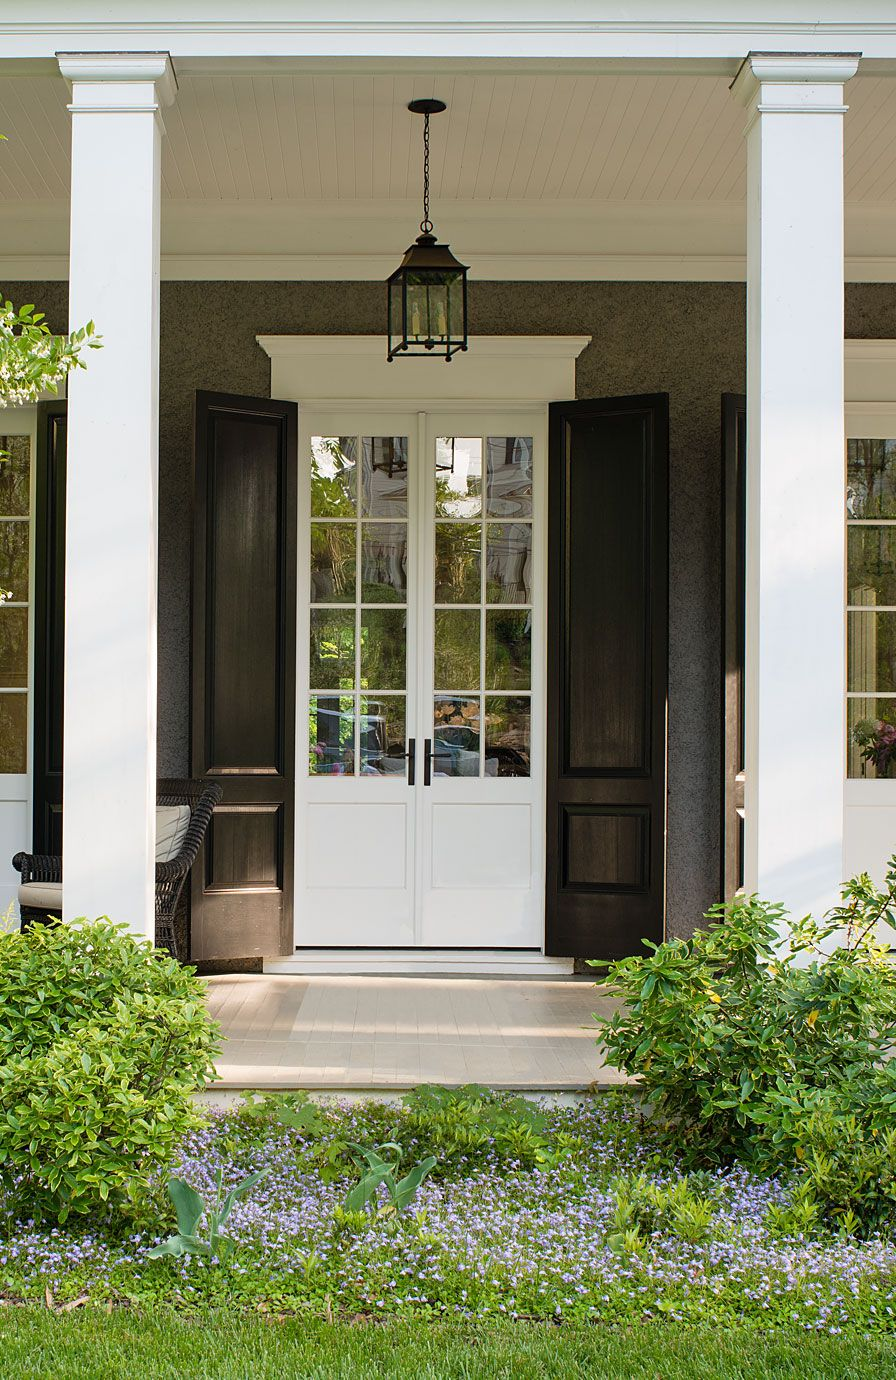 Donald Lococo Architects Classic American Foursquare French Country Exterior French Doors Exterior Shutters Exterior